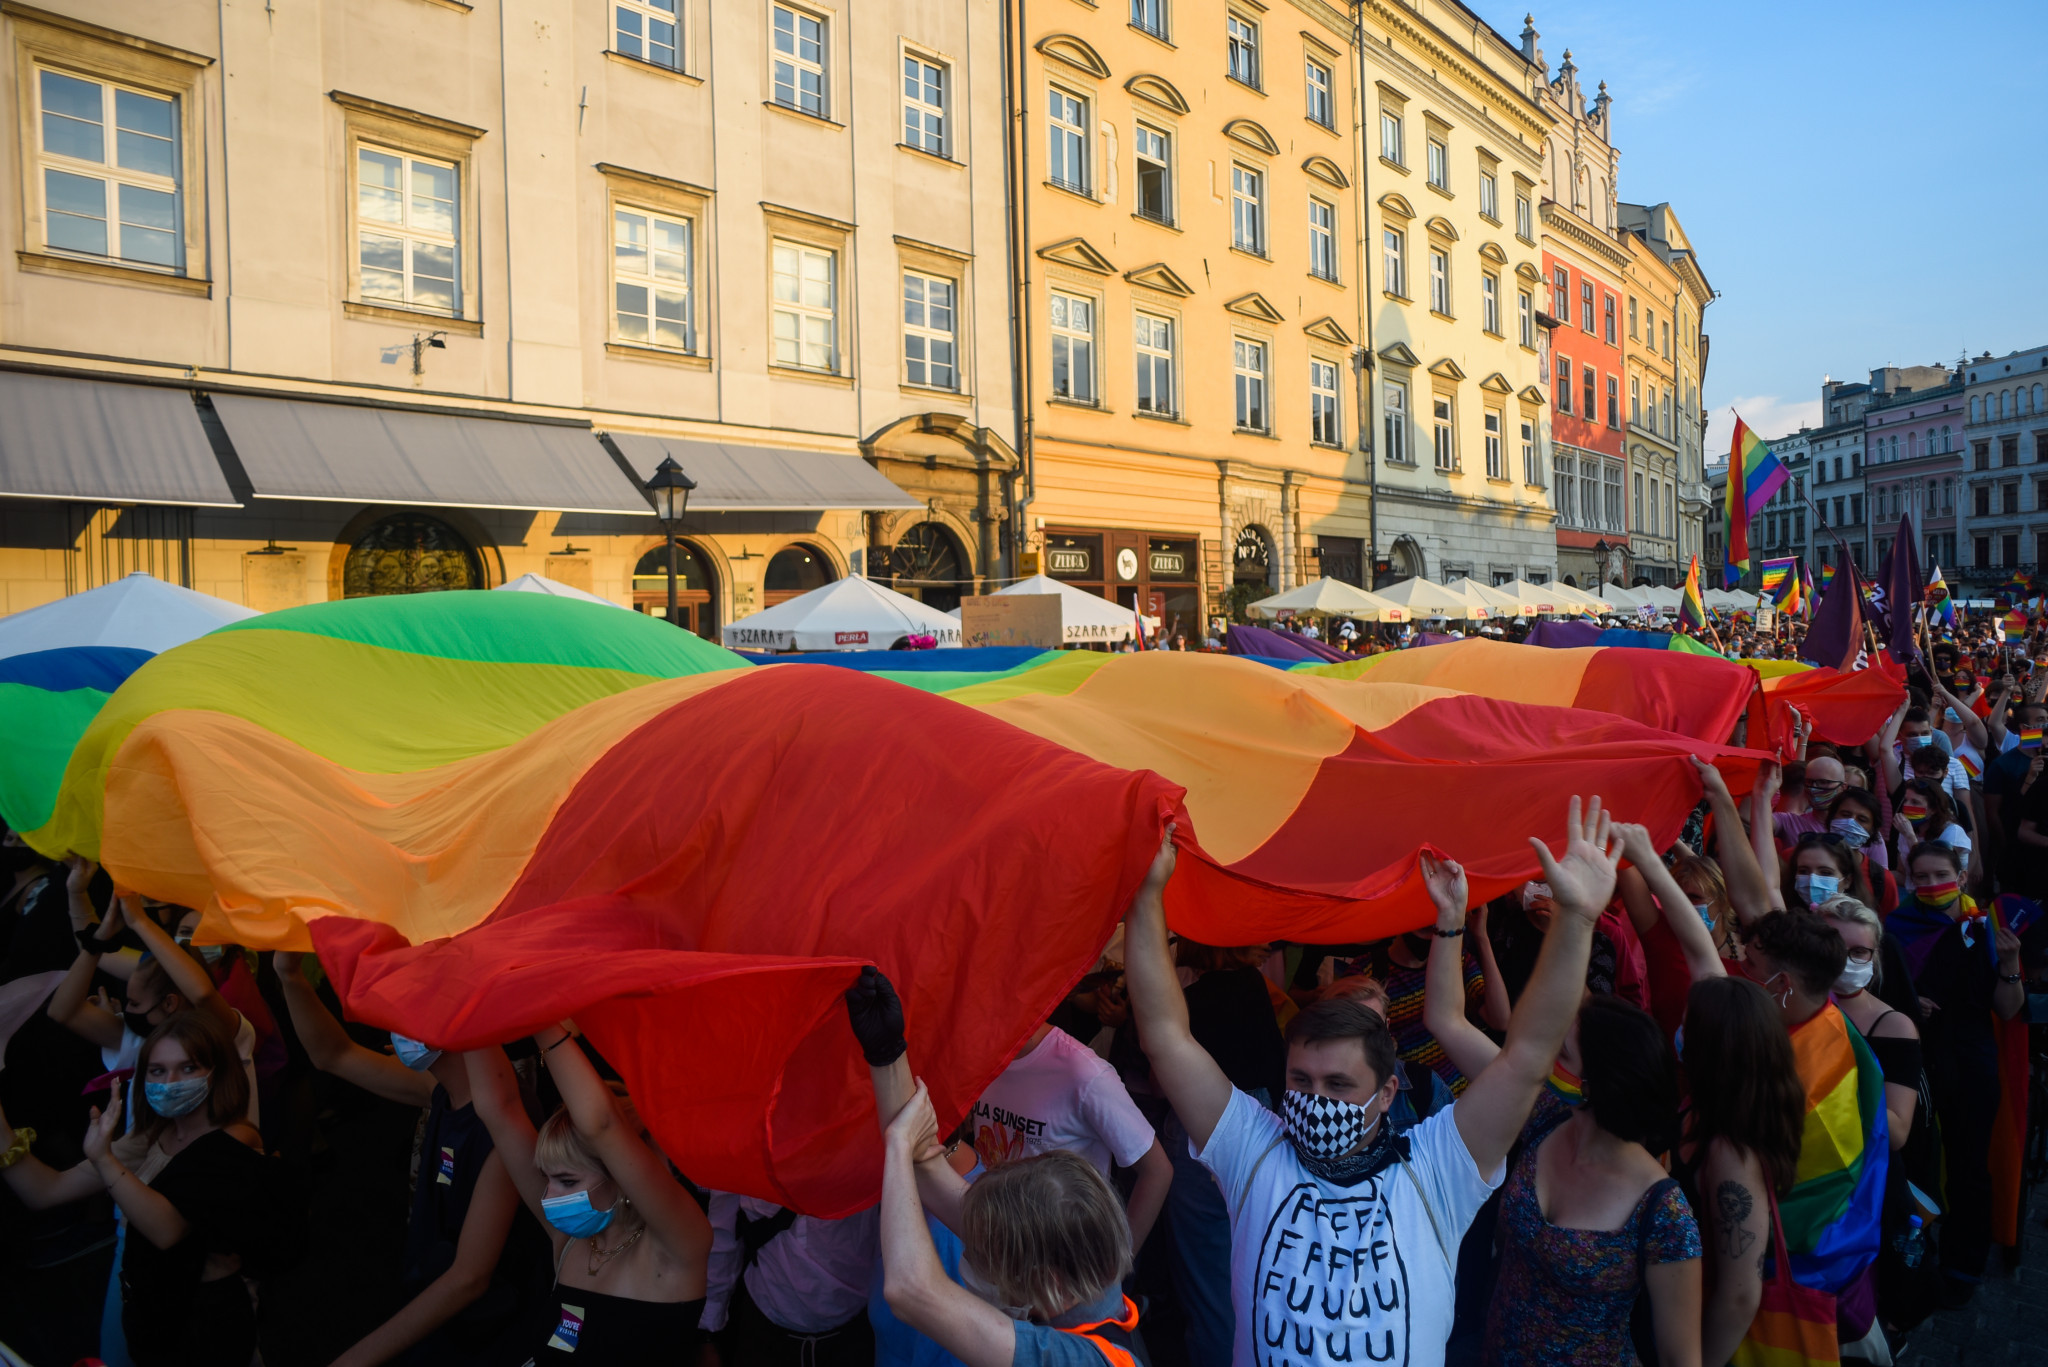 Poland's LGBT free zones have received criticism from the European Parliament ©Getty Images